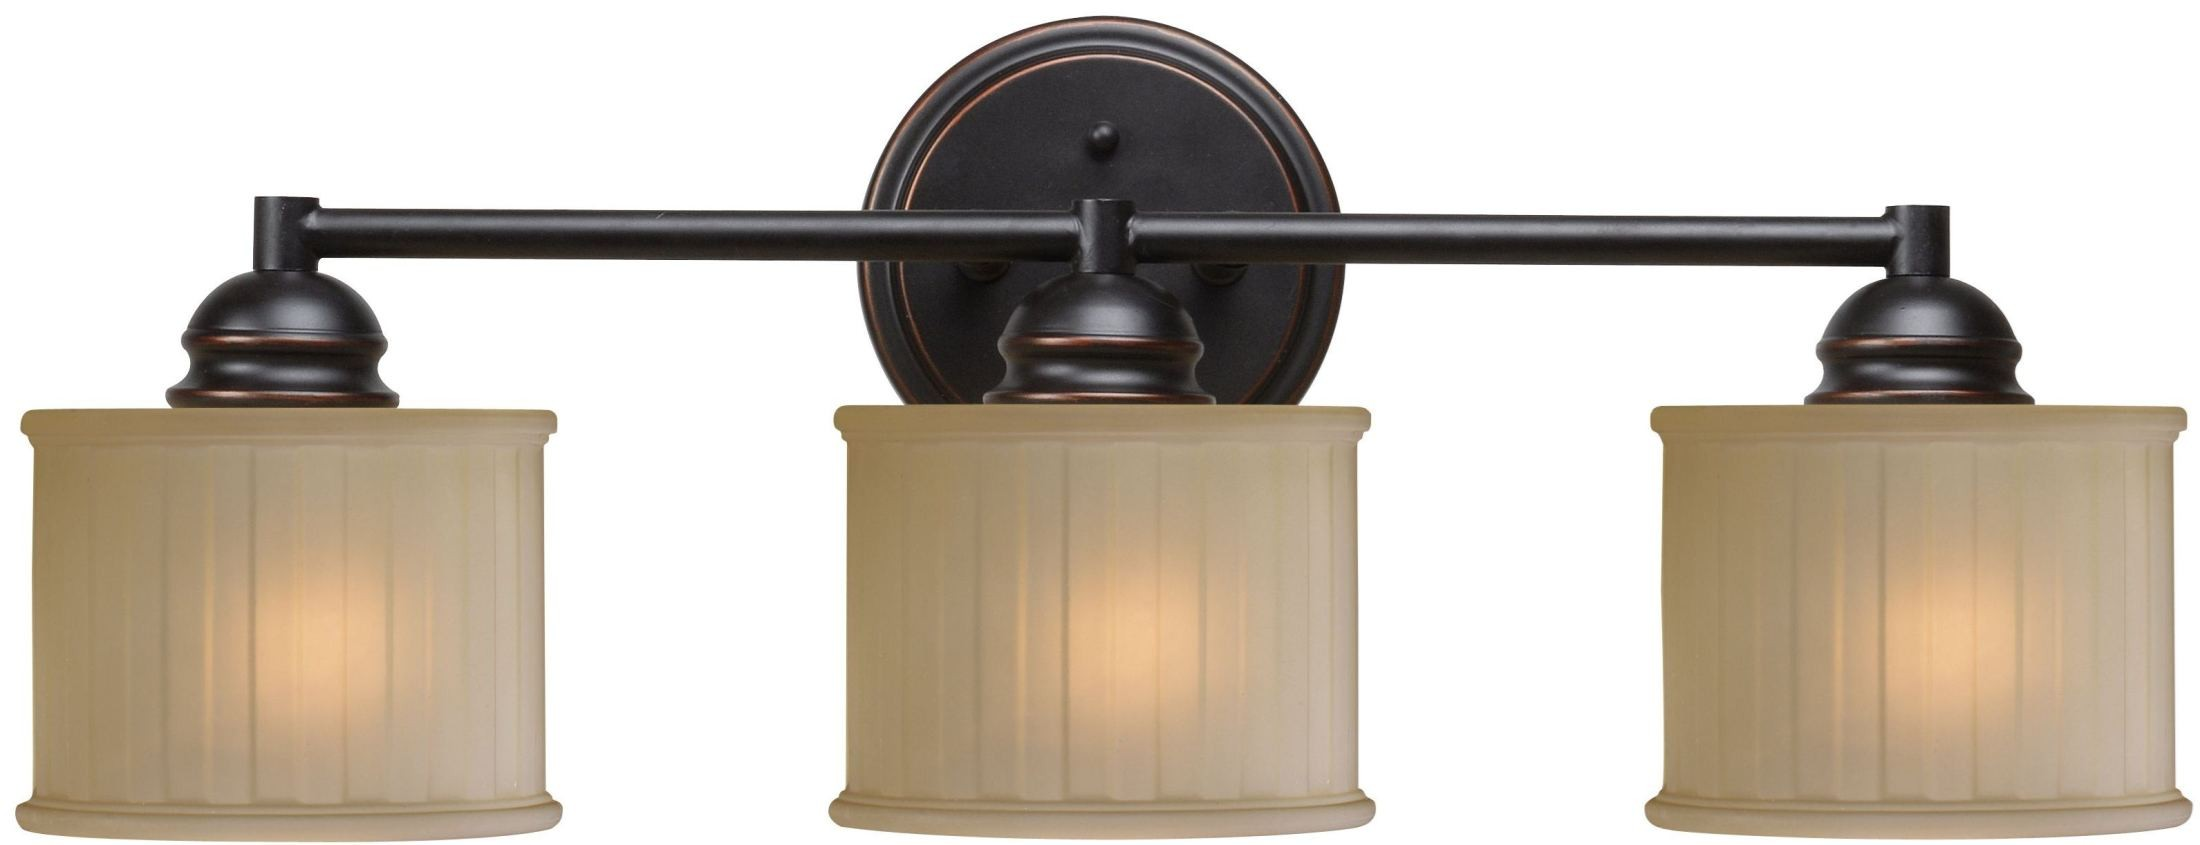 Vanity Lights Oil Rubbed Bronze : Barney Oil Rubbed Bronze 3 Light Vanity, 93573ORB, Kenroy Home